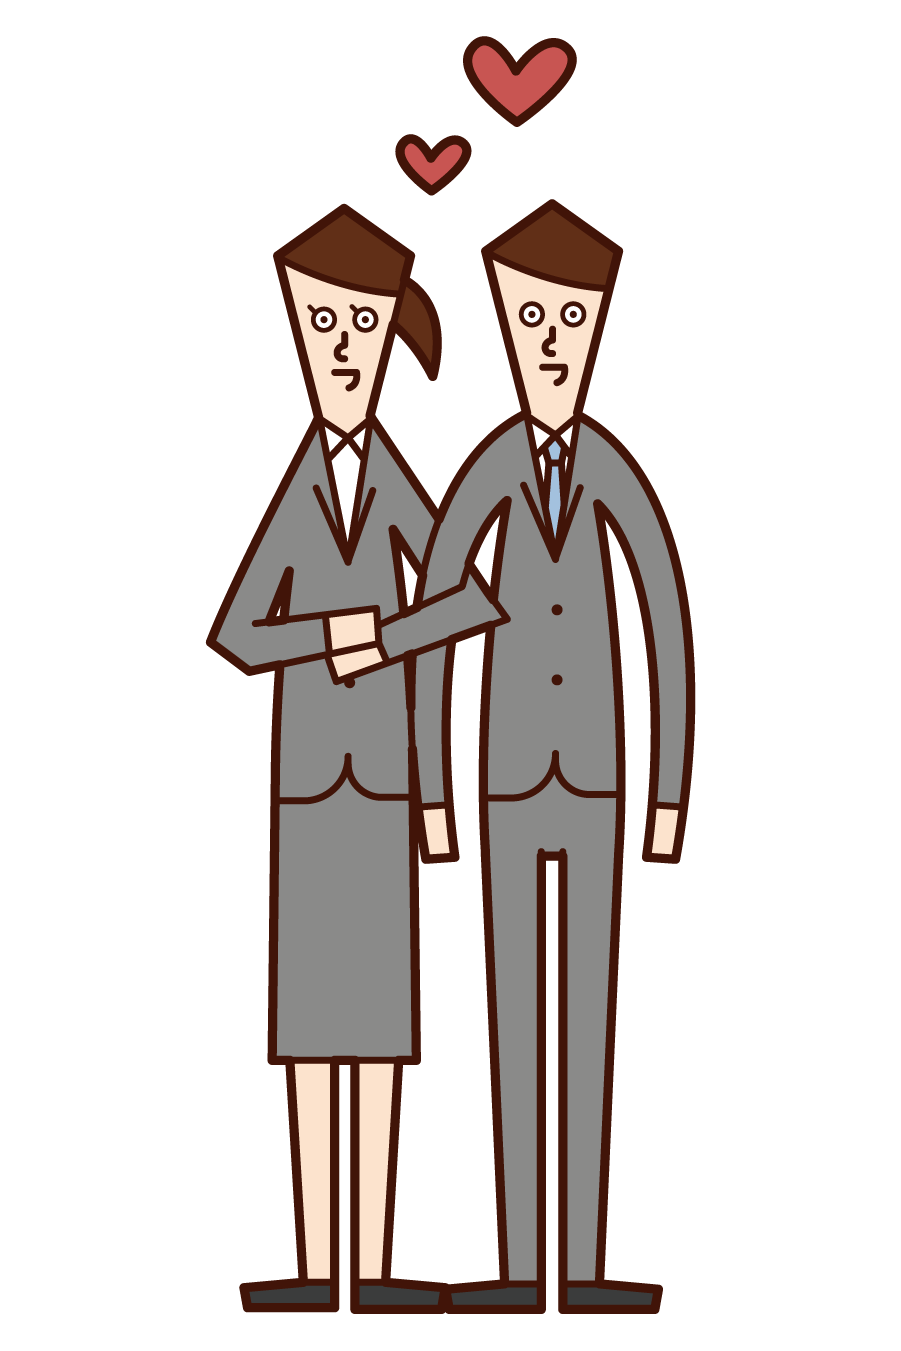 Illustration of in-house romance